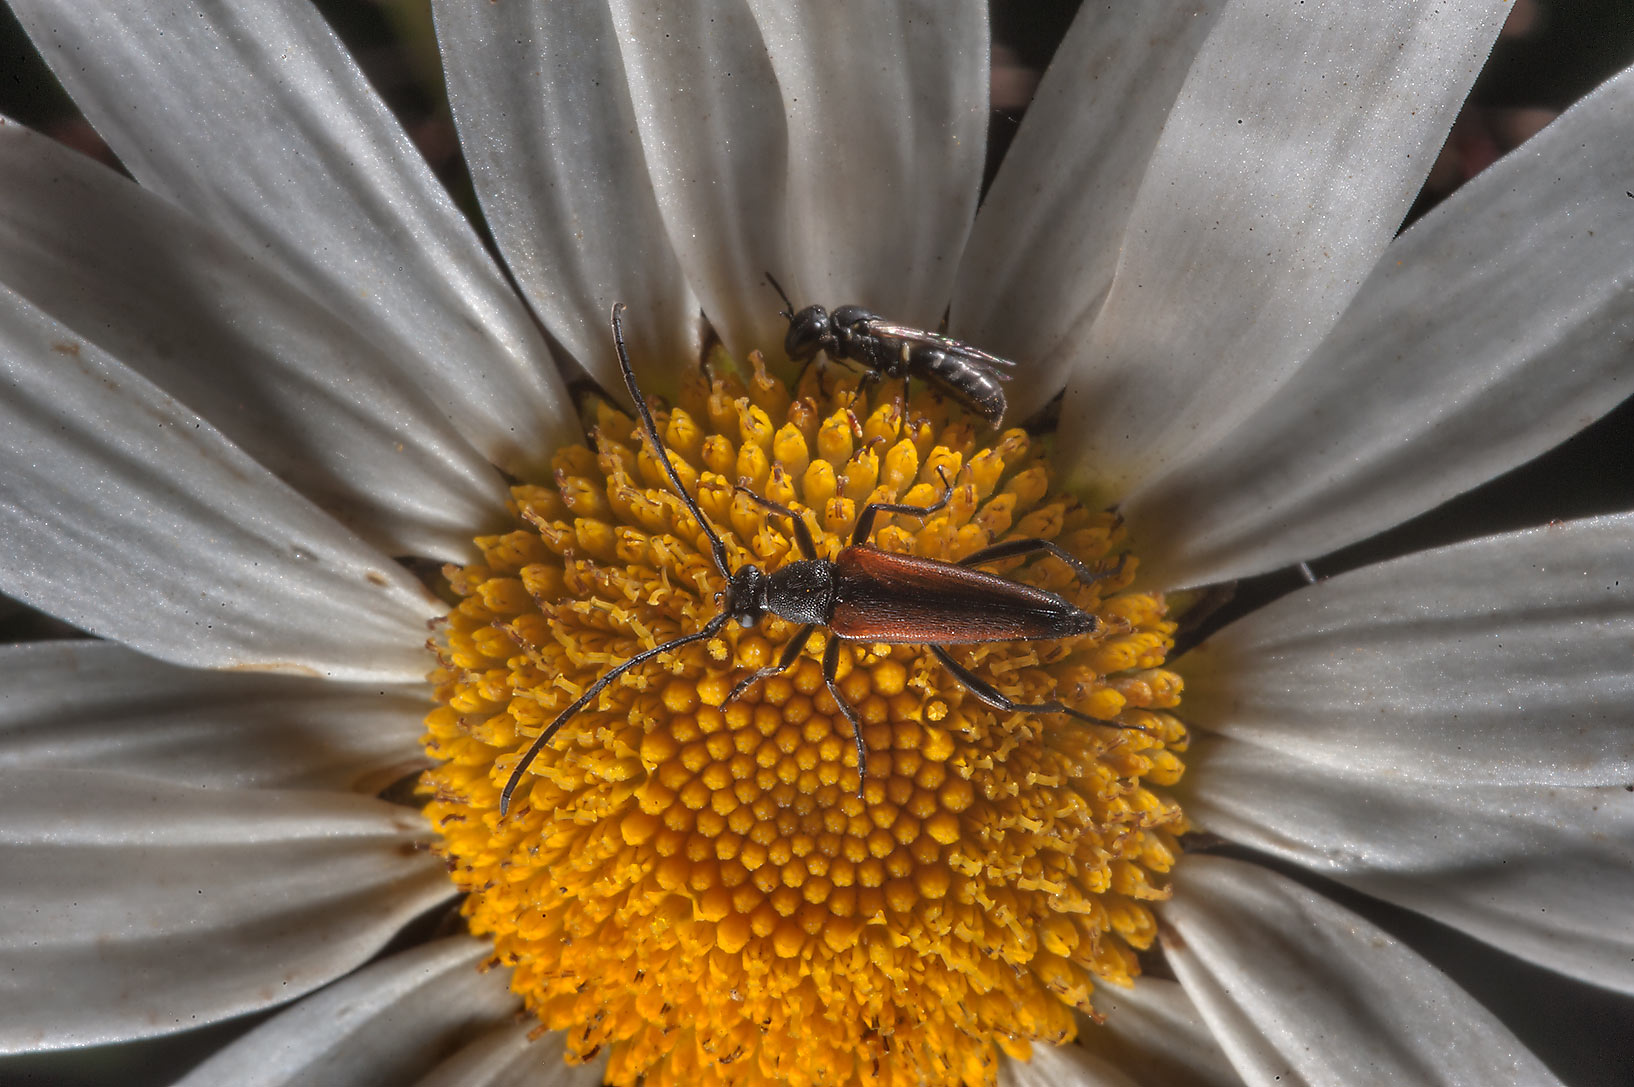 Daisy with a horn beetle in Petiayarvi, north from St.Petersburg. Russia